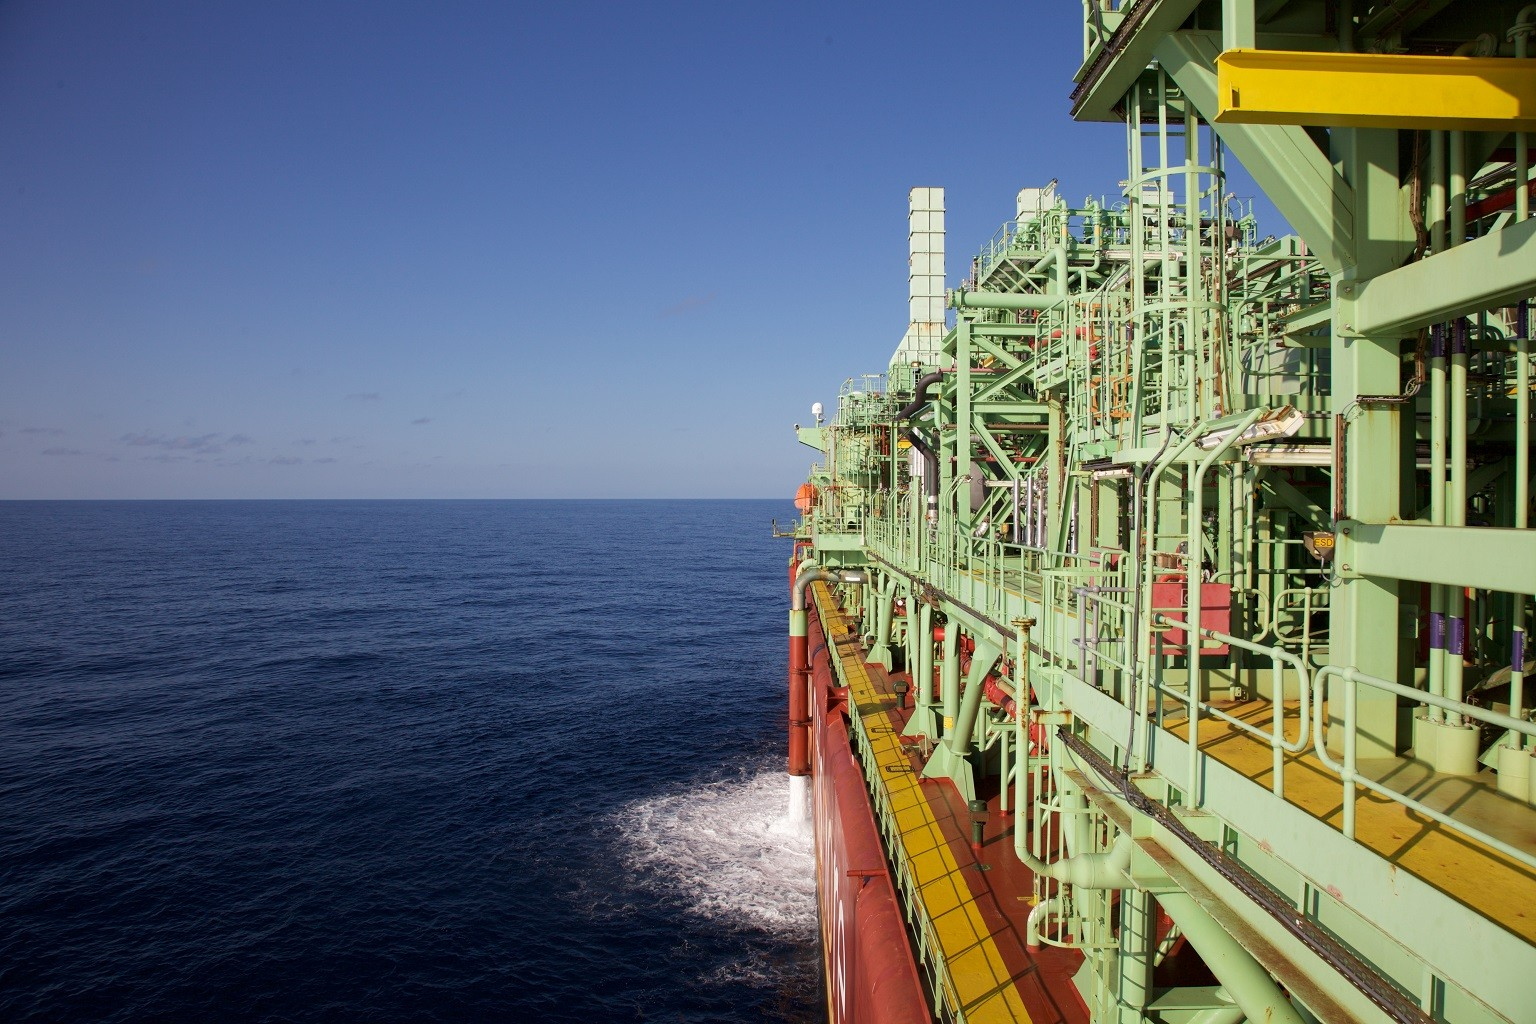 BW Offshore inks $4.6 billion contract with Barossa FPSO